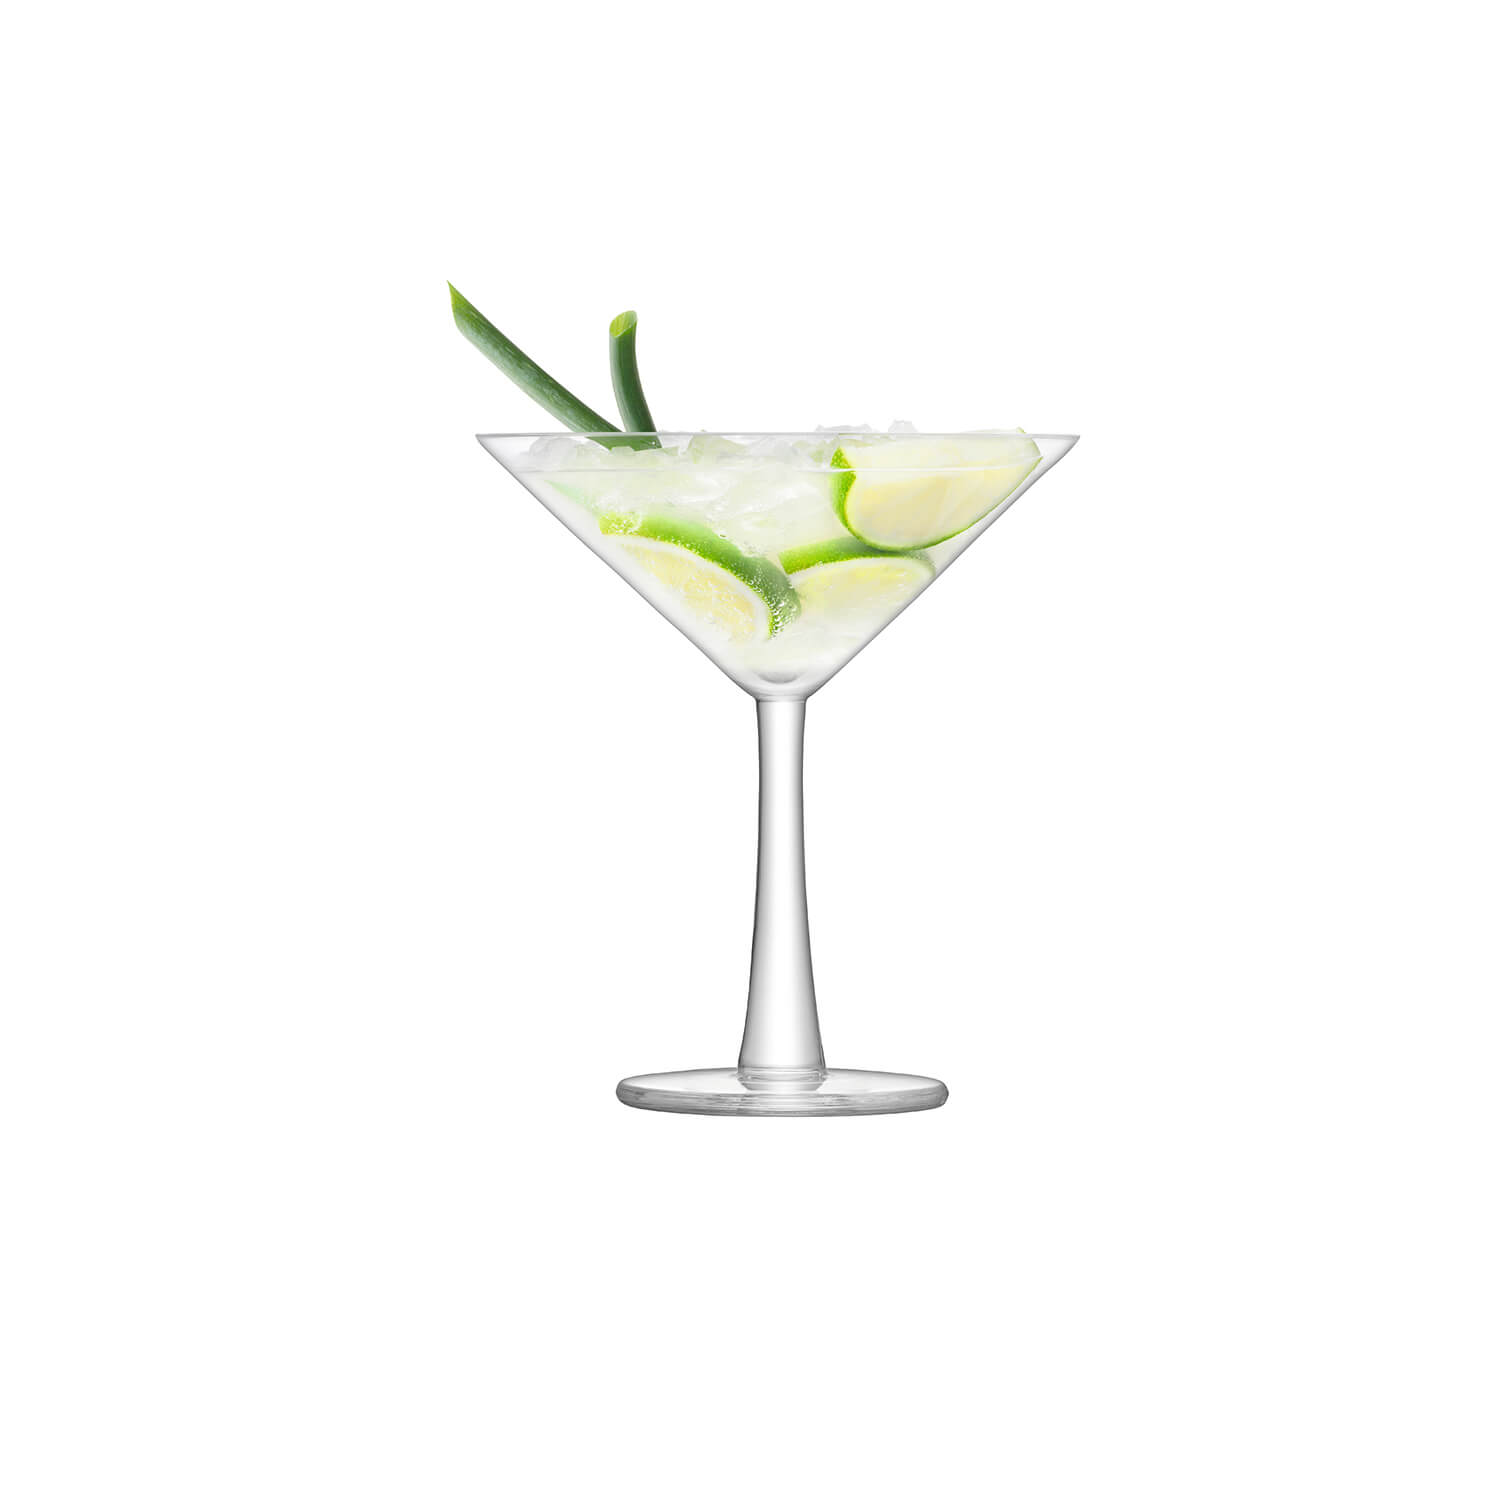 Image of LSA Gin Cocktail Glass, Set of 2